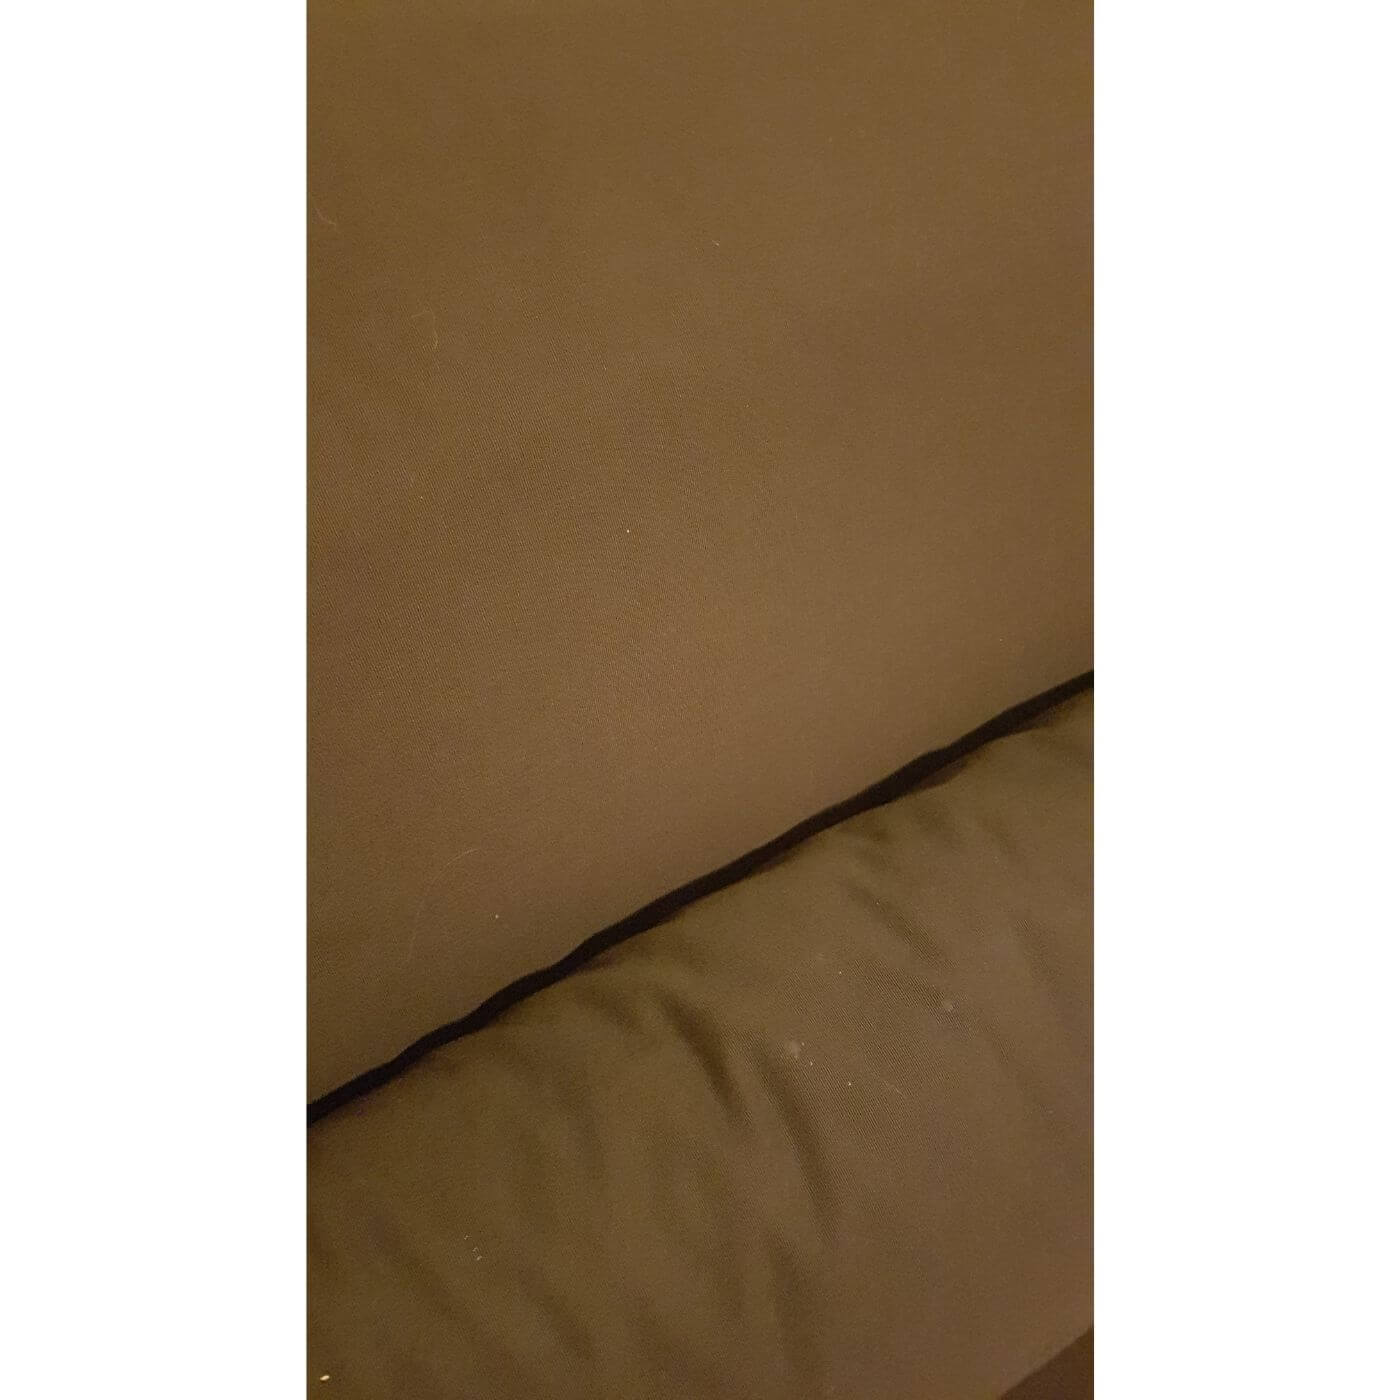 Ligne Roset Multy sofabed in chocolate brown fabric, excellent condition